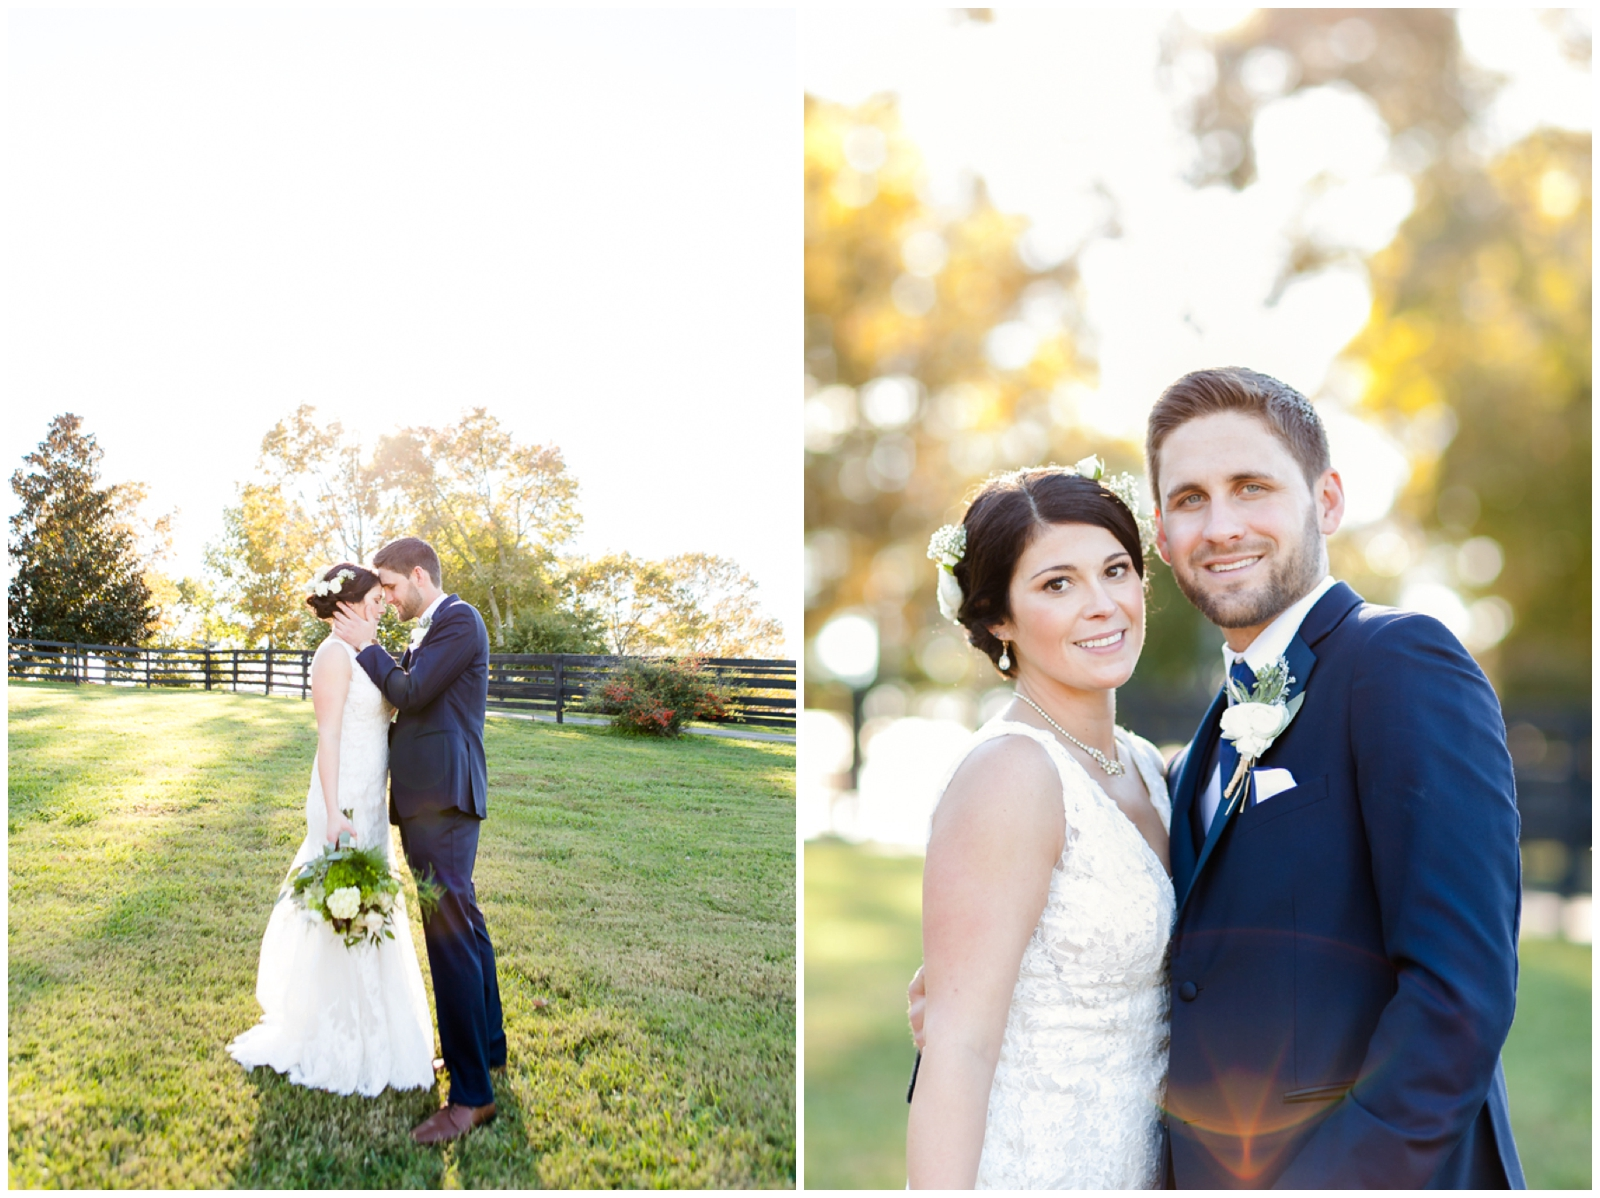 R&G_AtlantaWeddingPhotographer_WhiteOaksBarn_0021